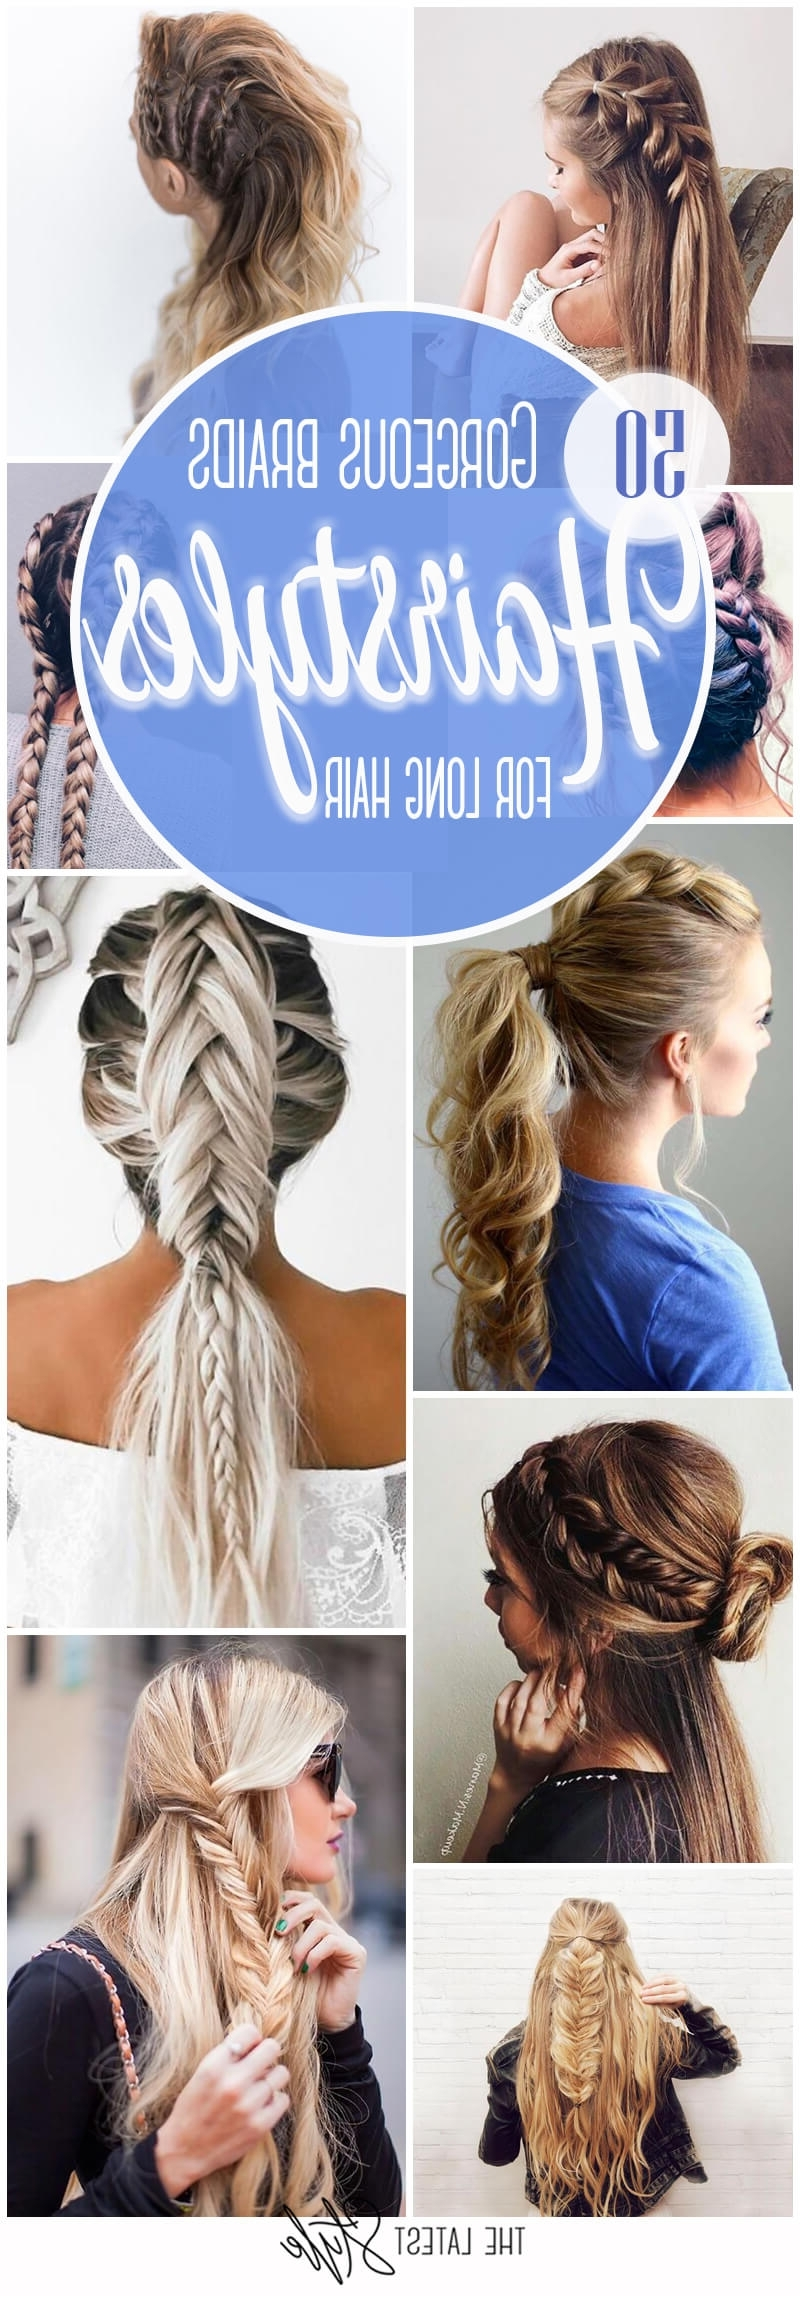 50 Gorgeous Braids Hairstyles For Long Hair For 2017 Braids And Waves For Any Occasion (View 9 of 15)